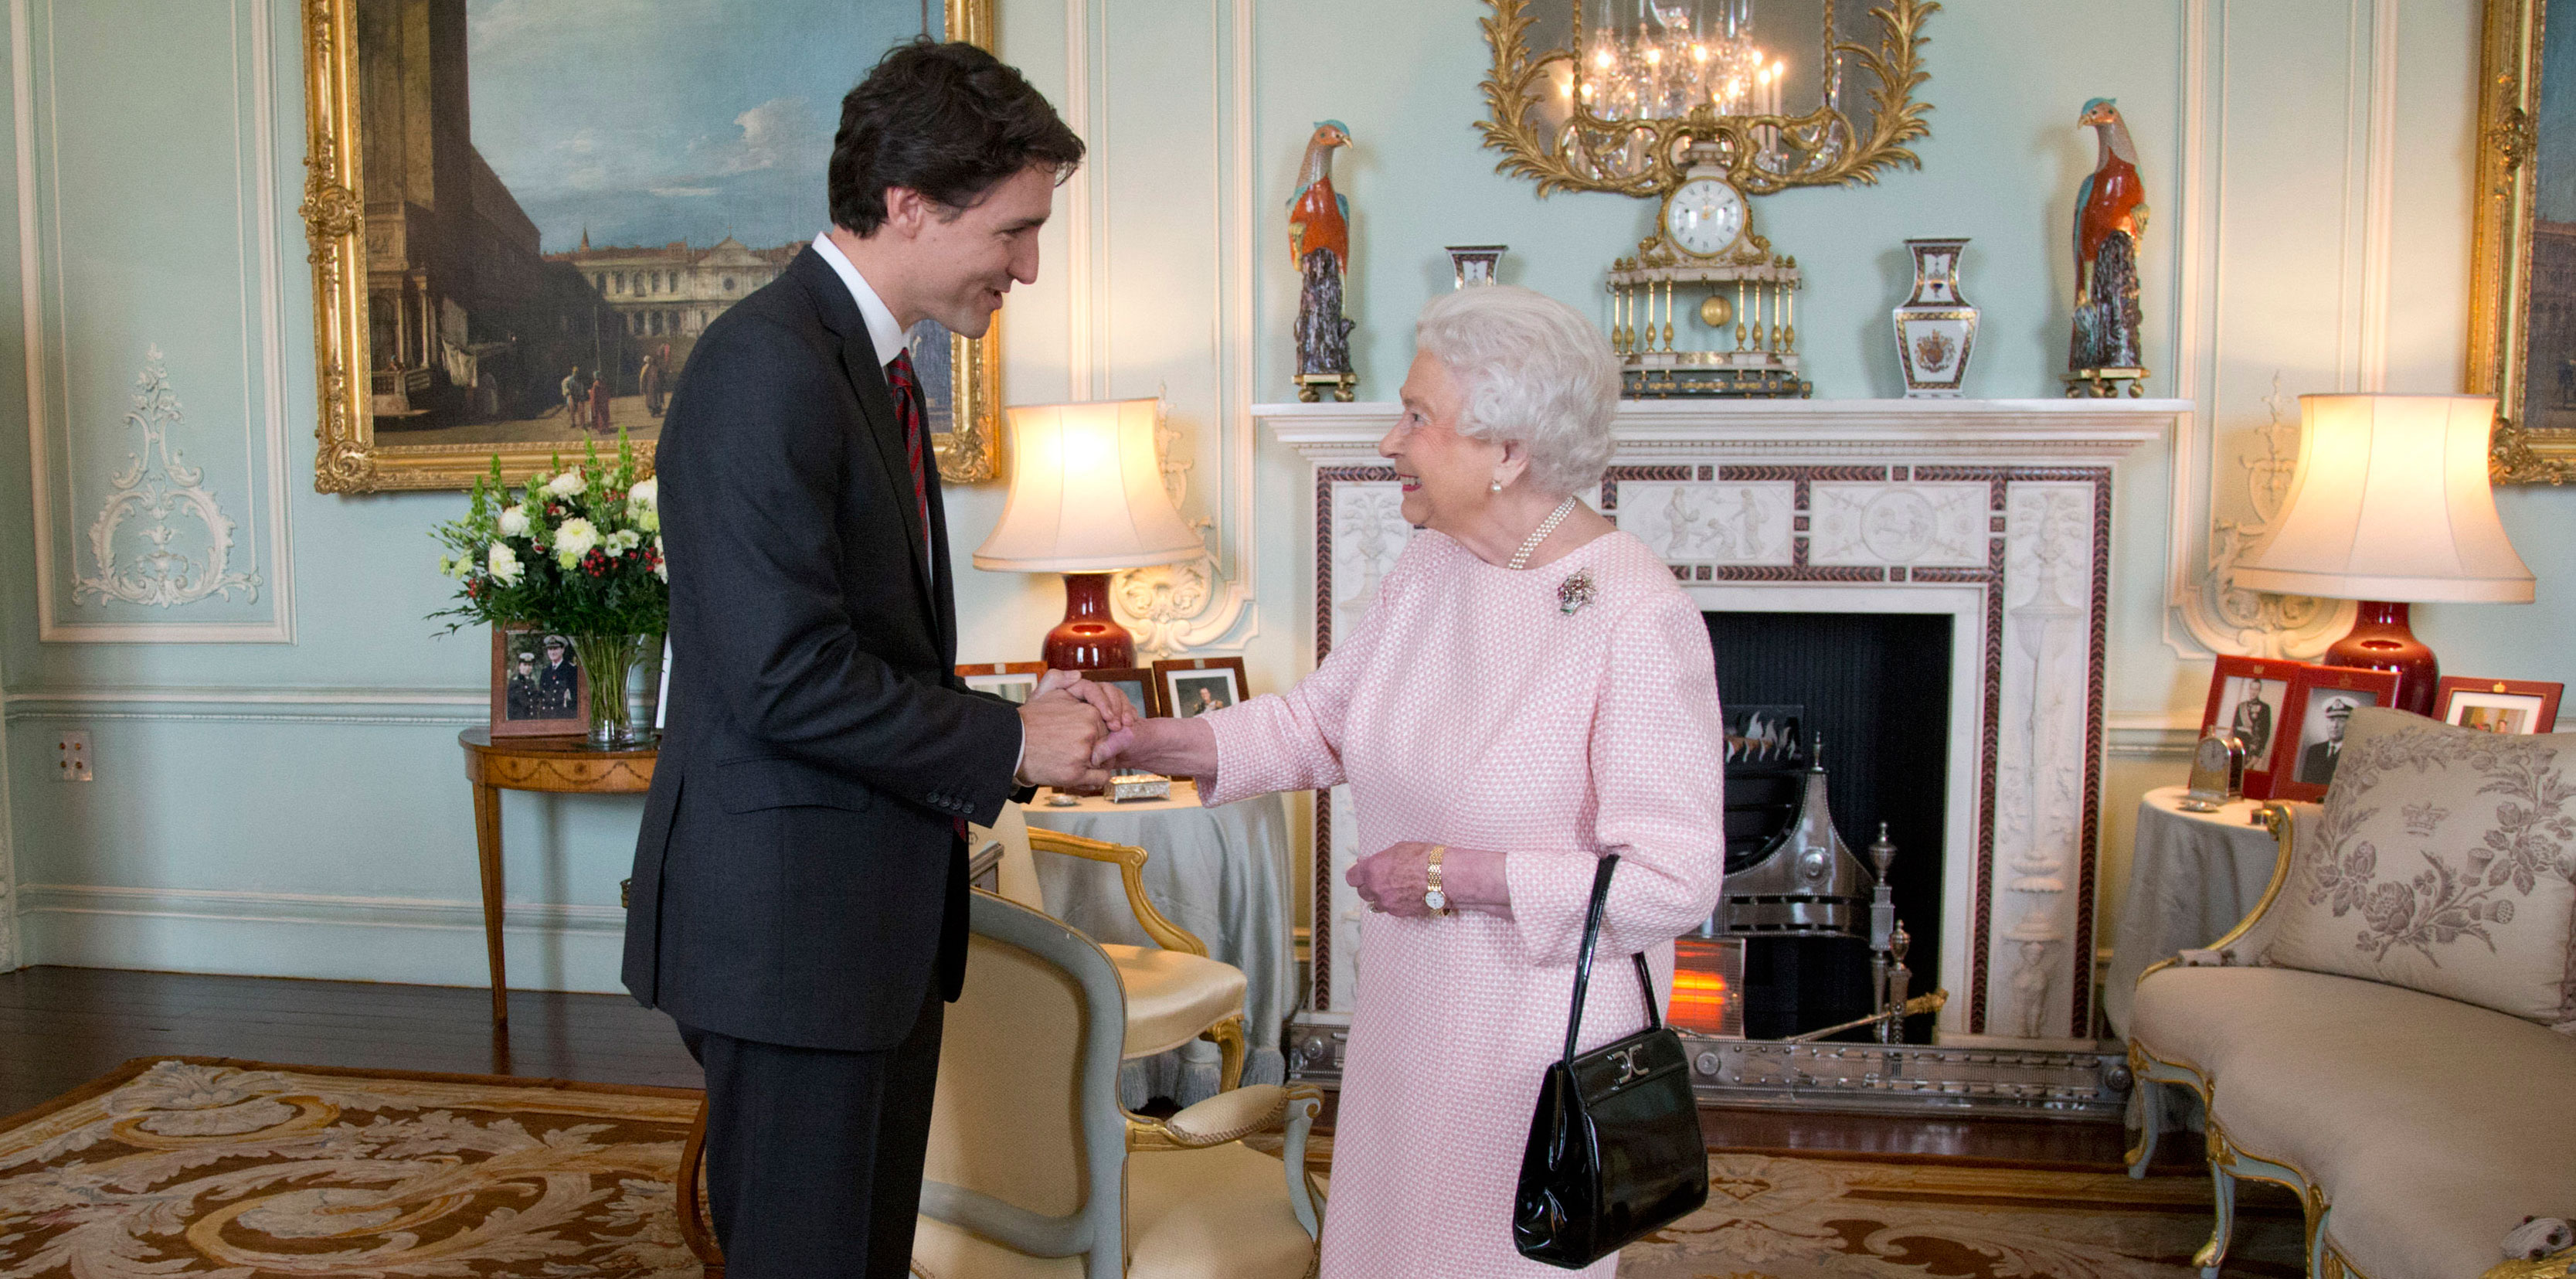 The Queen meets Justin Trudeau at Buckingham Palace